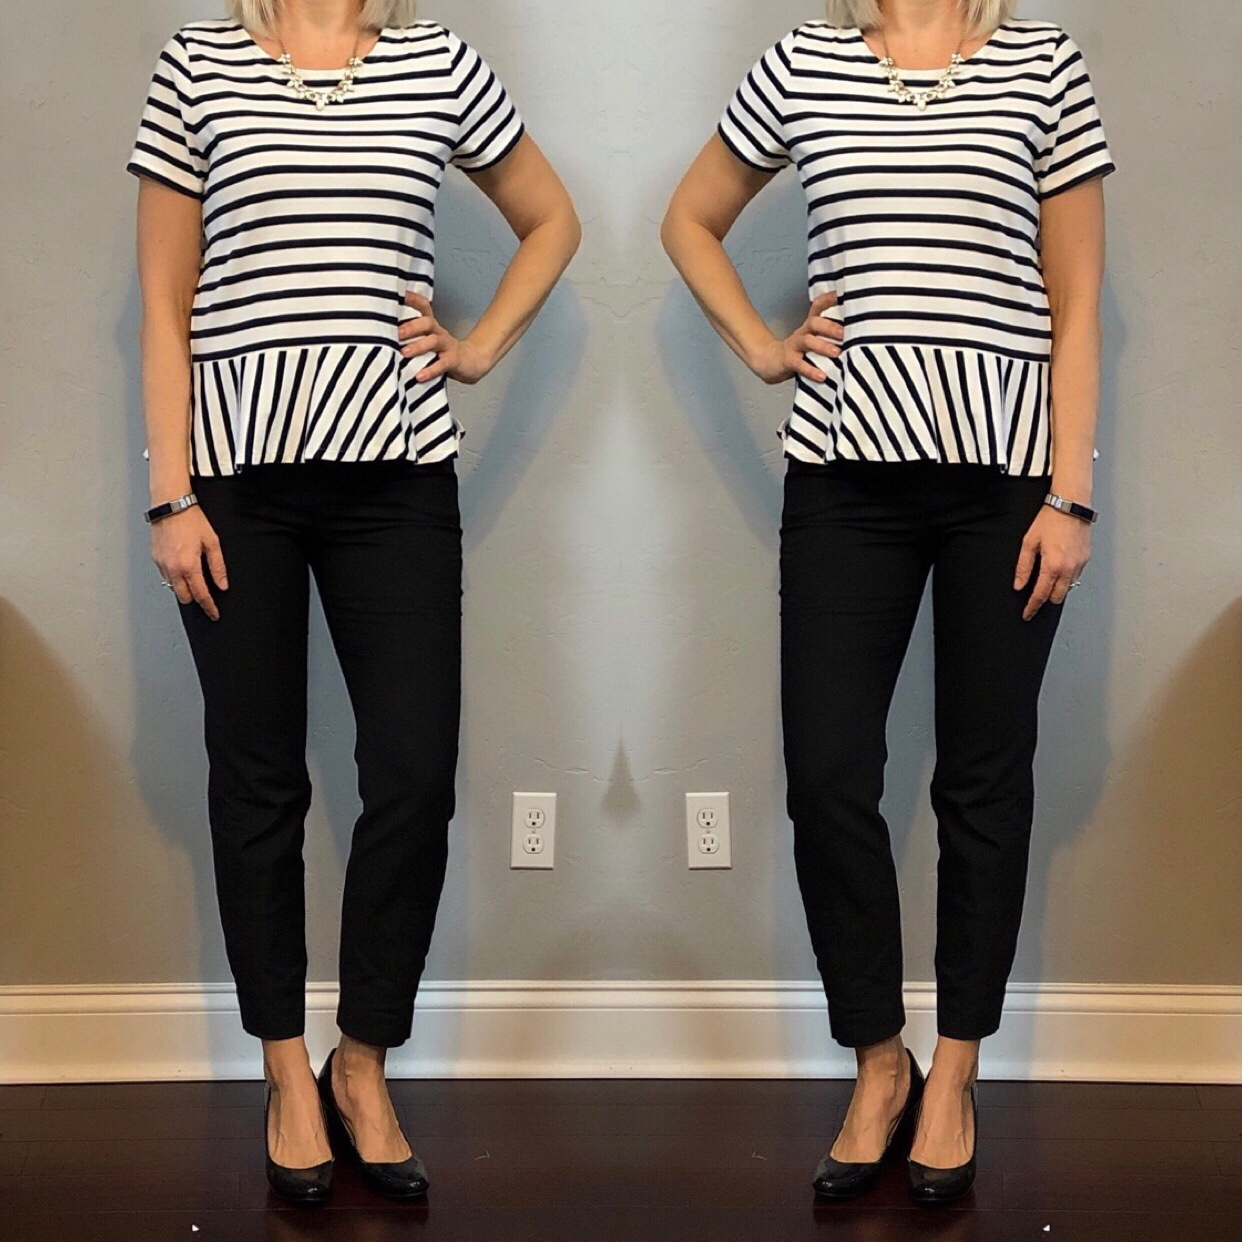 72127636de4677 outfit post: striped peplum top, black ankle pants, black patent wedges